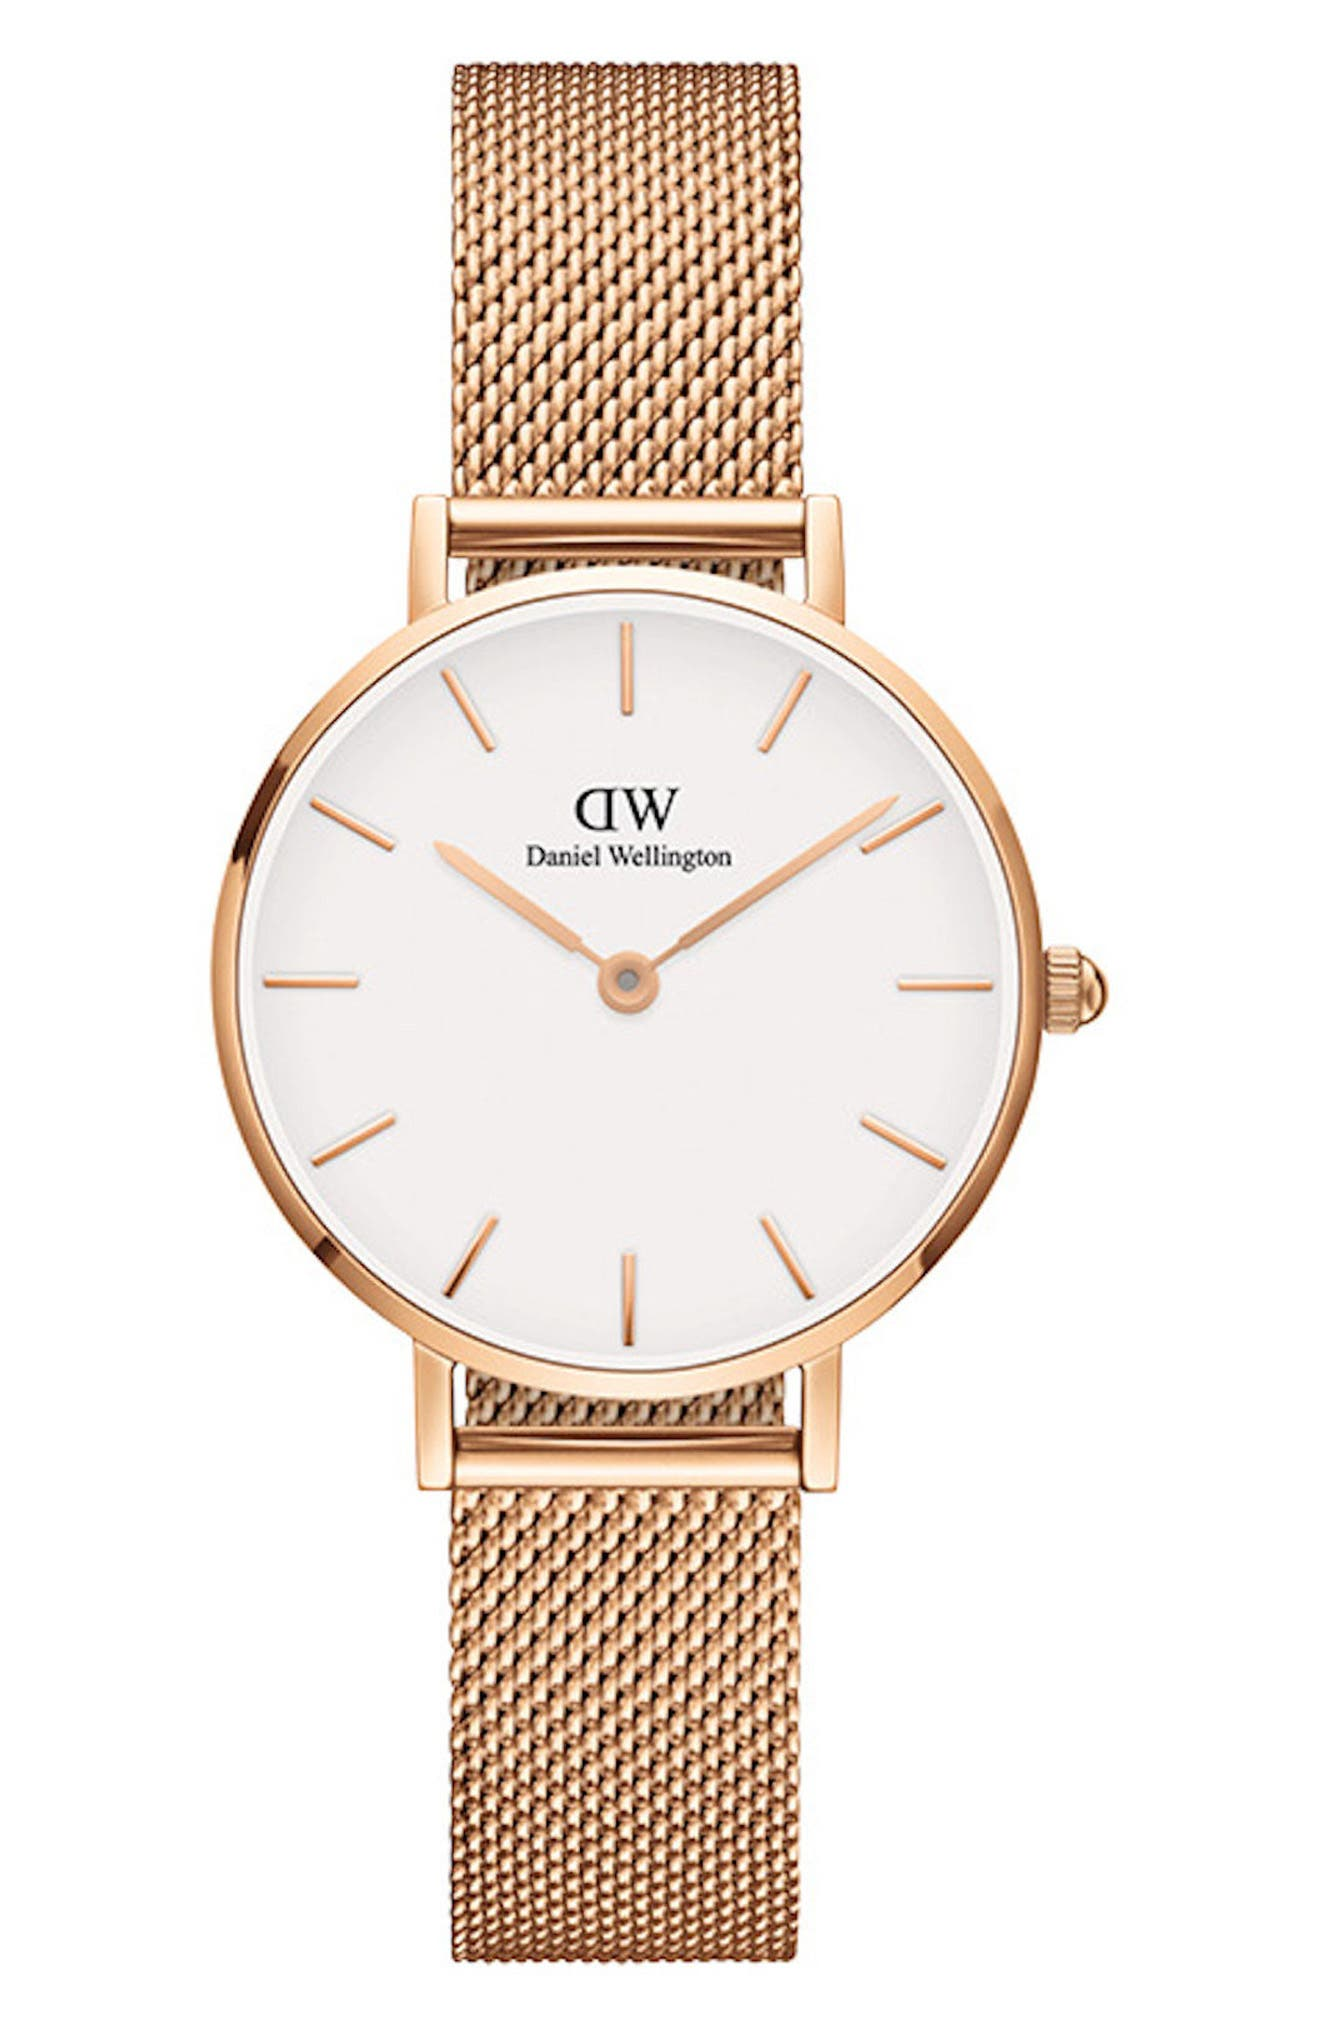 DANIEL WELLINGTON Classic Petite Mesh Strap Watch, 28mm, Main, color, ROSE GOLD/ WHITE/ ROSE GOLD